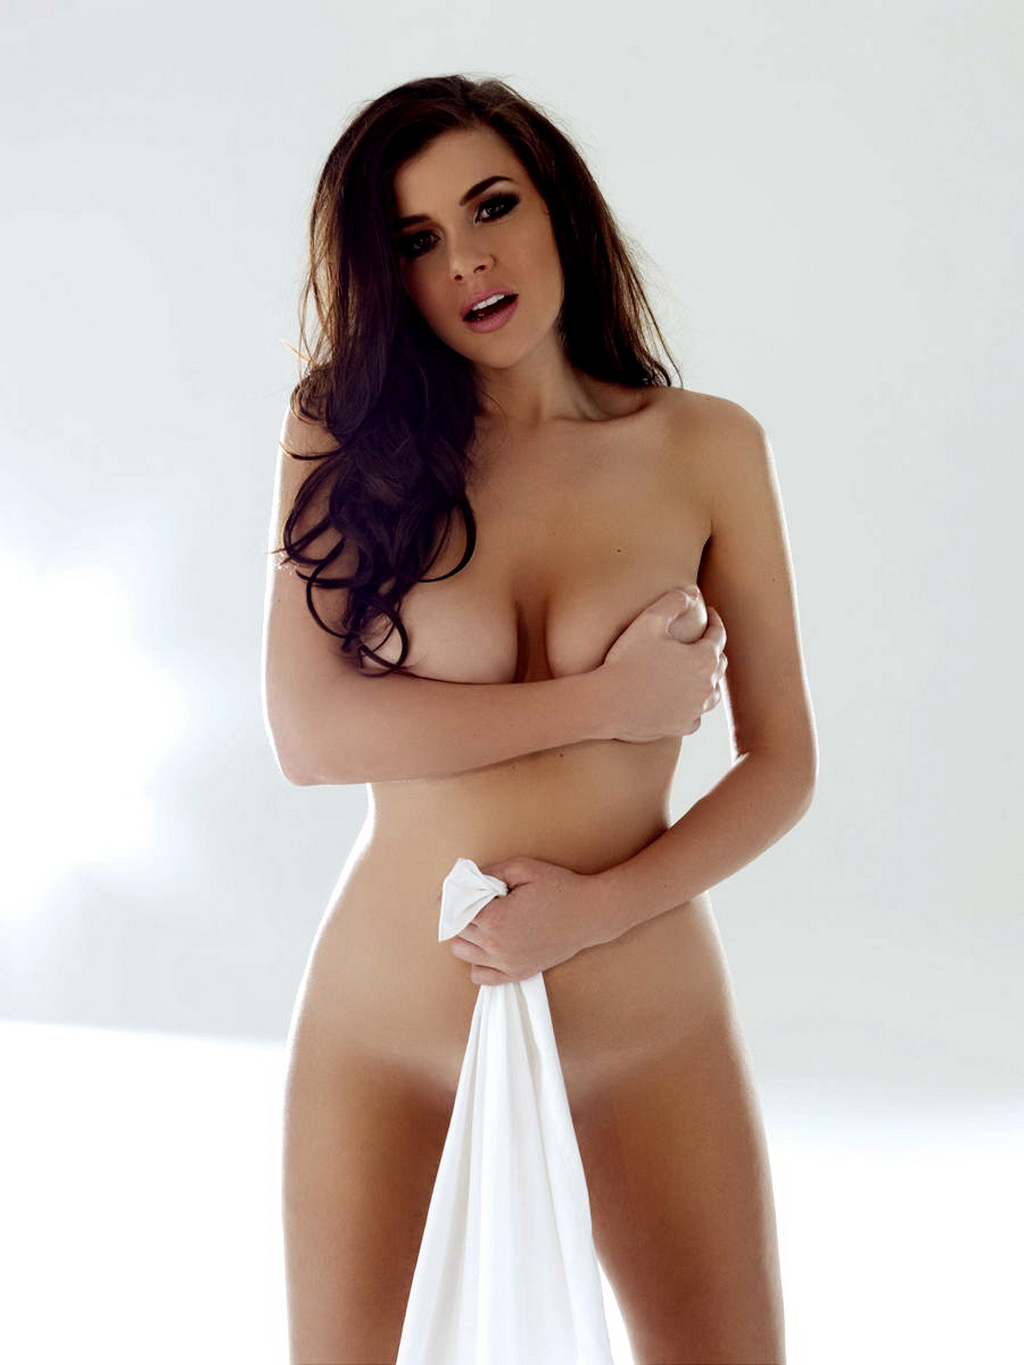 imogen-thomas-nude-hot-young-girls-looking-for-sex